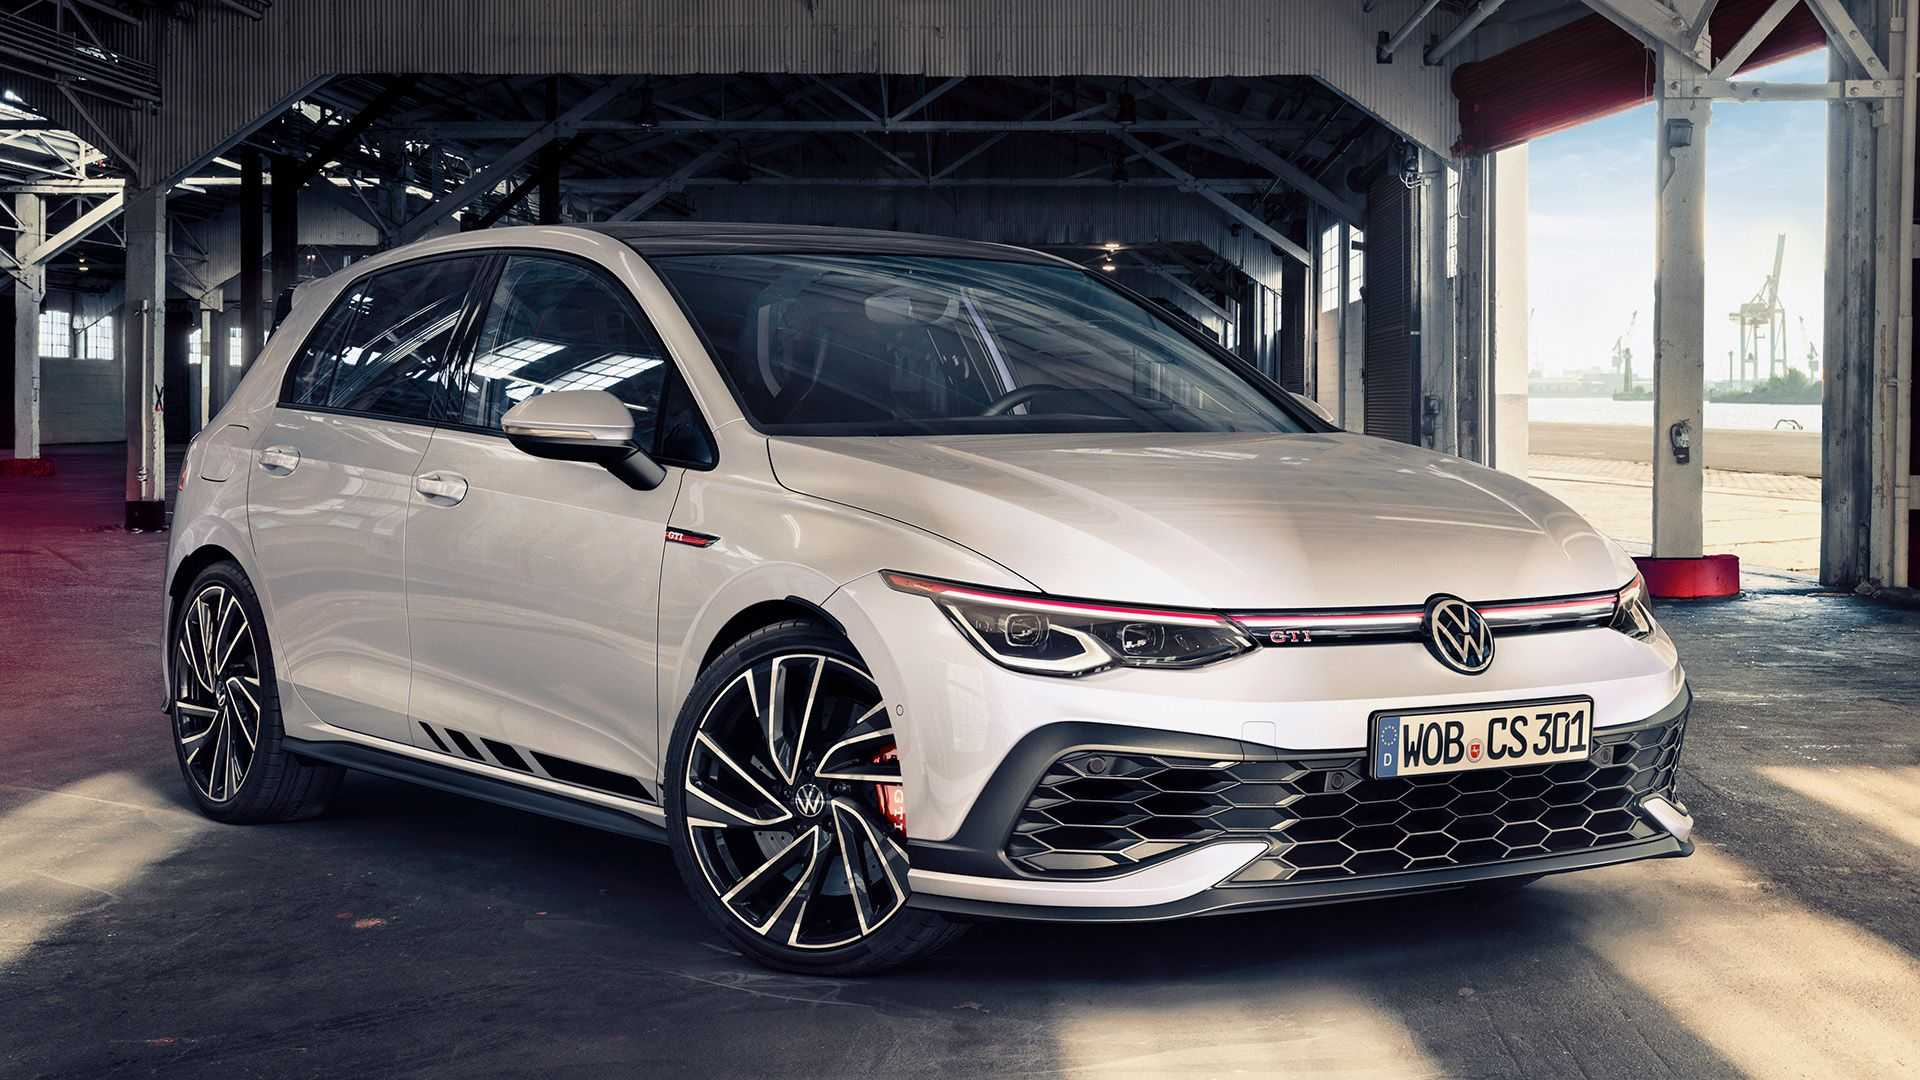 Volkswagen Golf 8 — is everything so unambiguous?